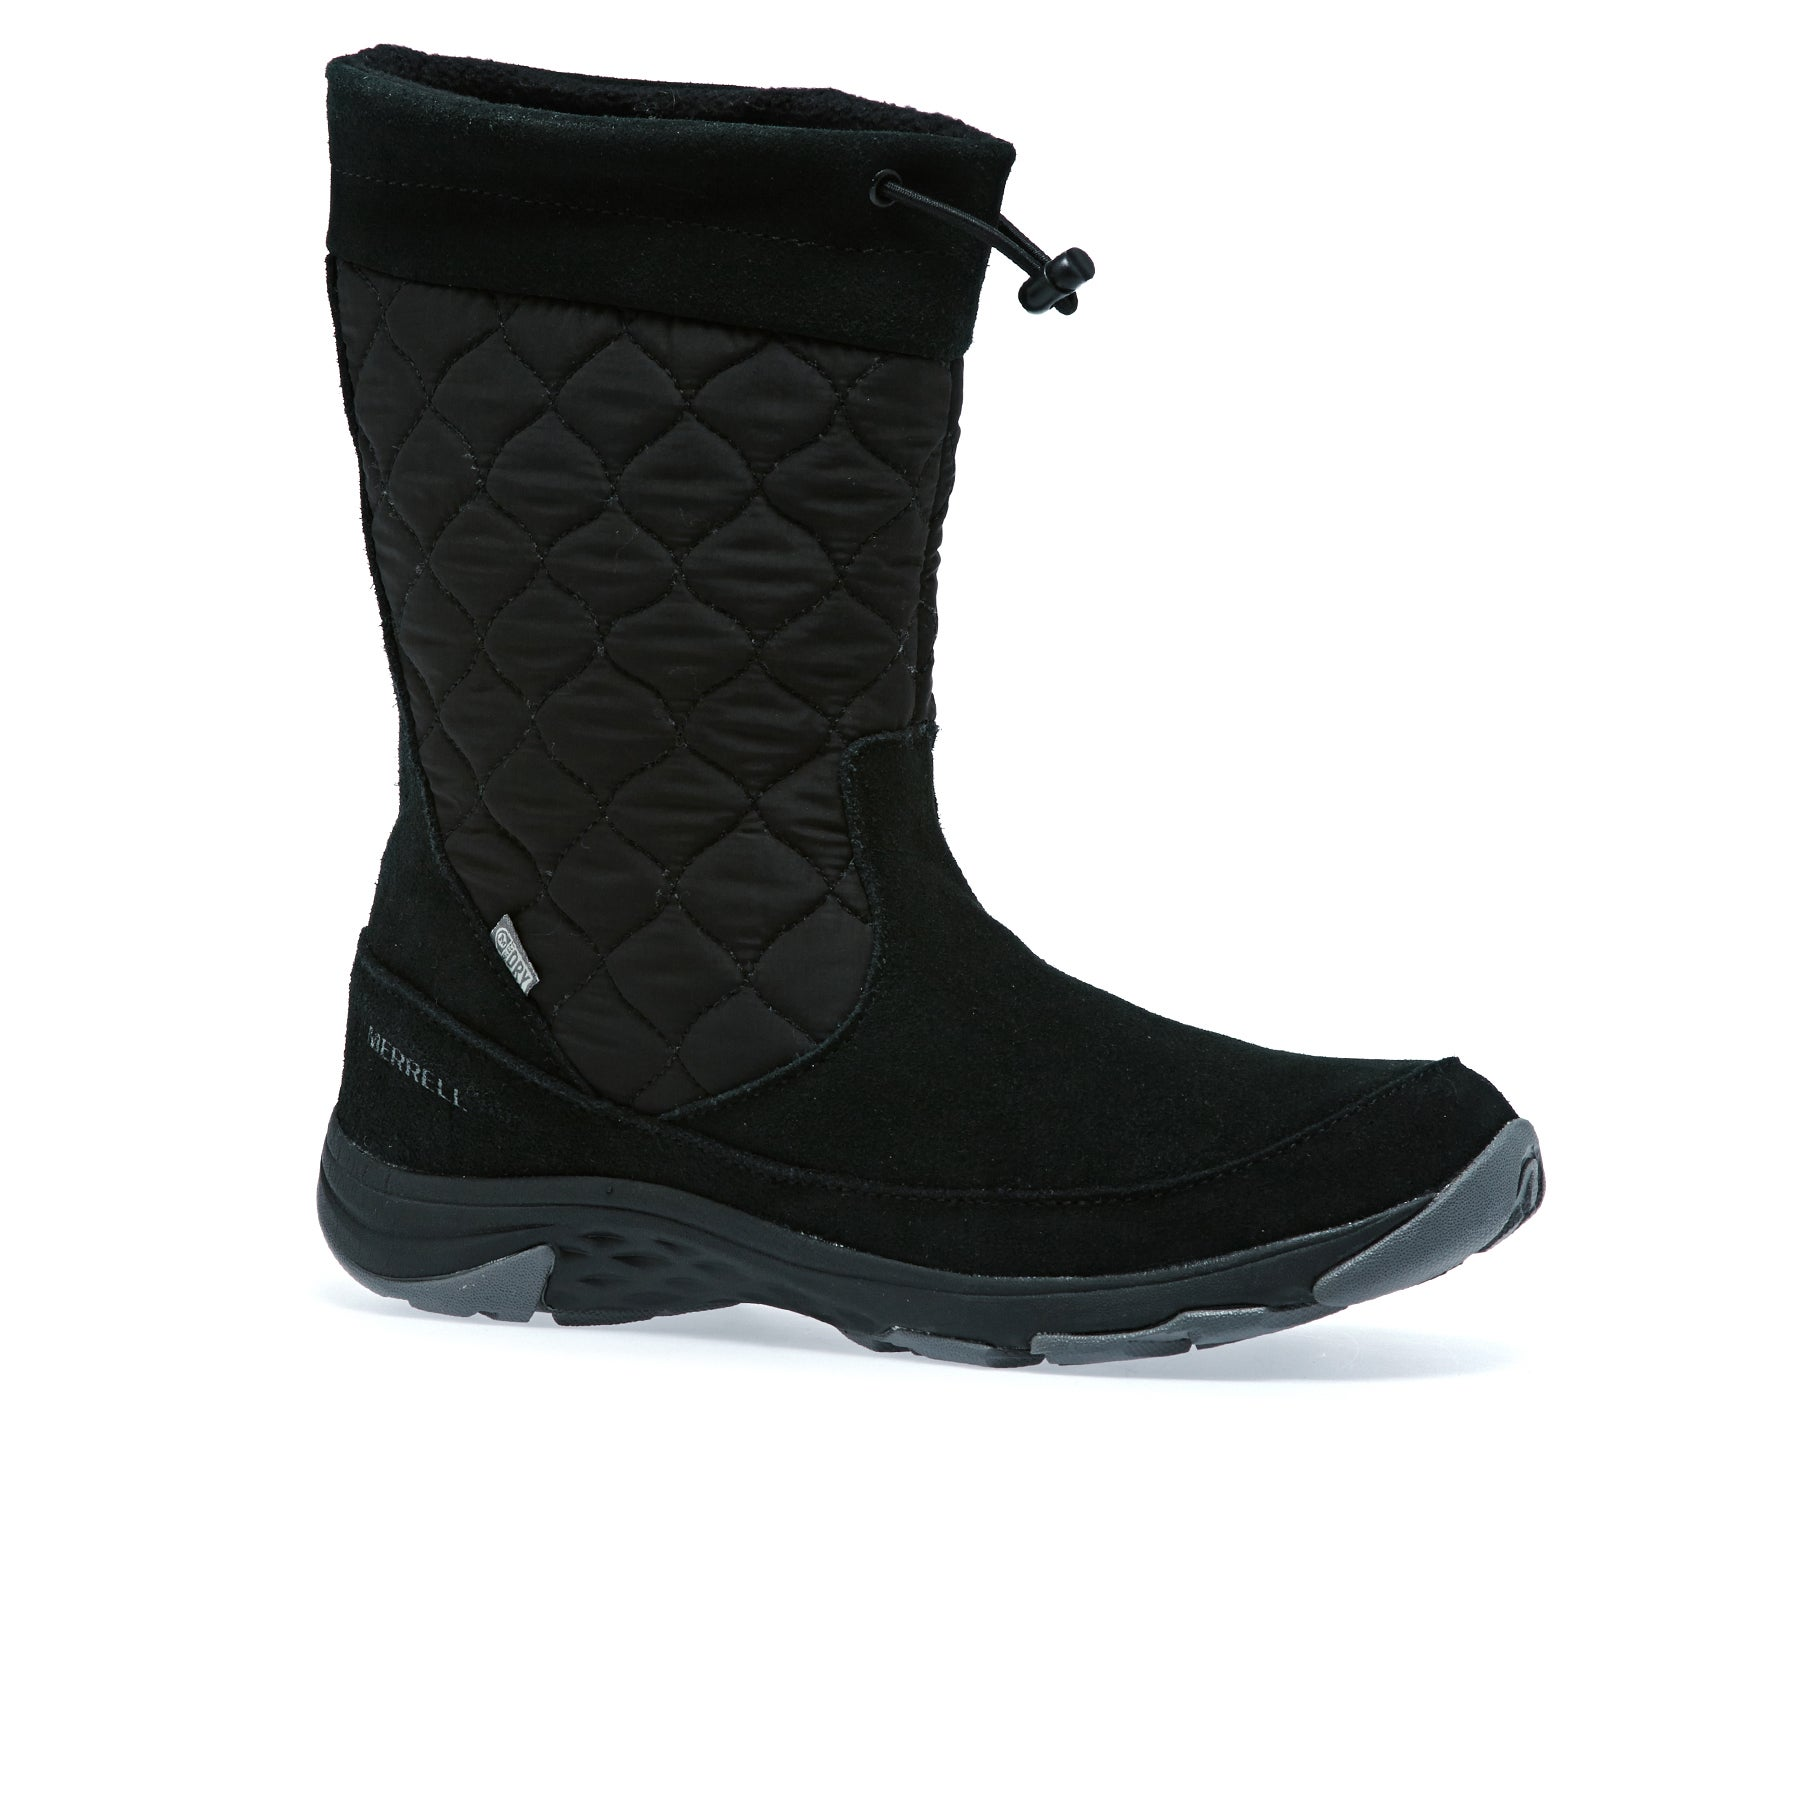 Merrell Approach Pull On LTR WP Womens Boots - Black